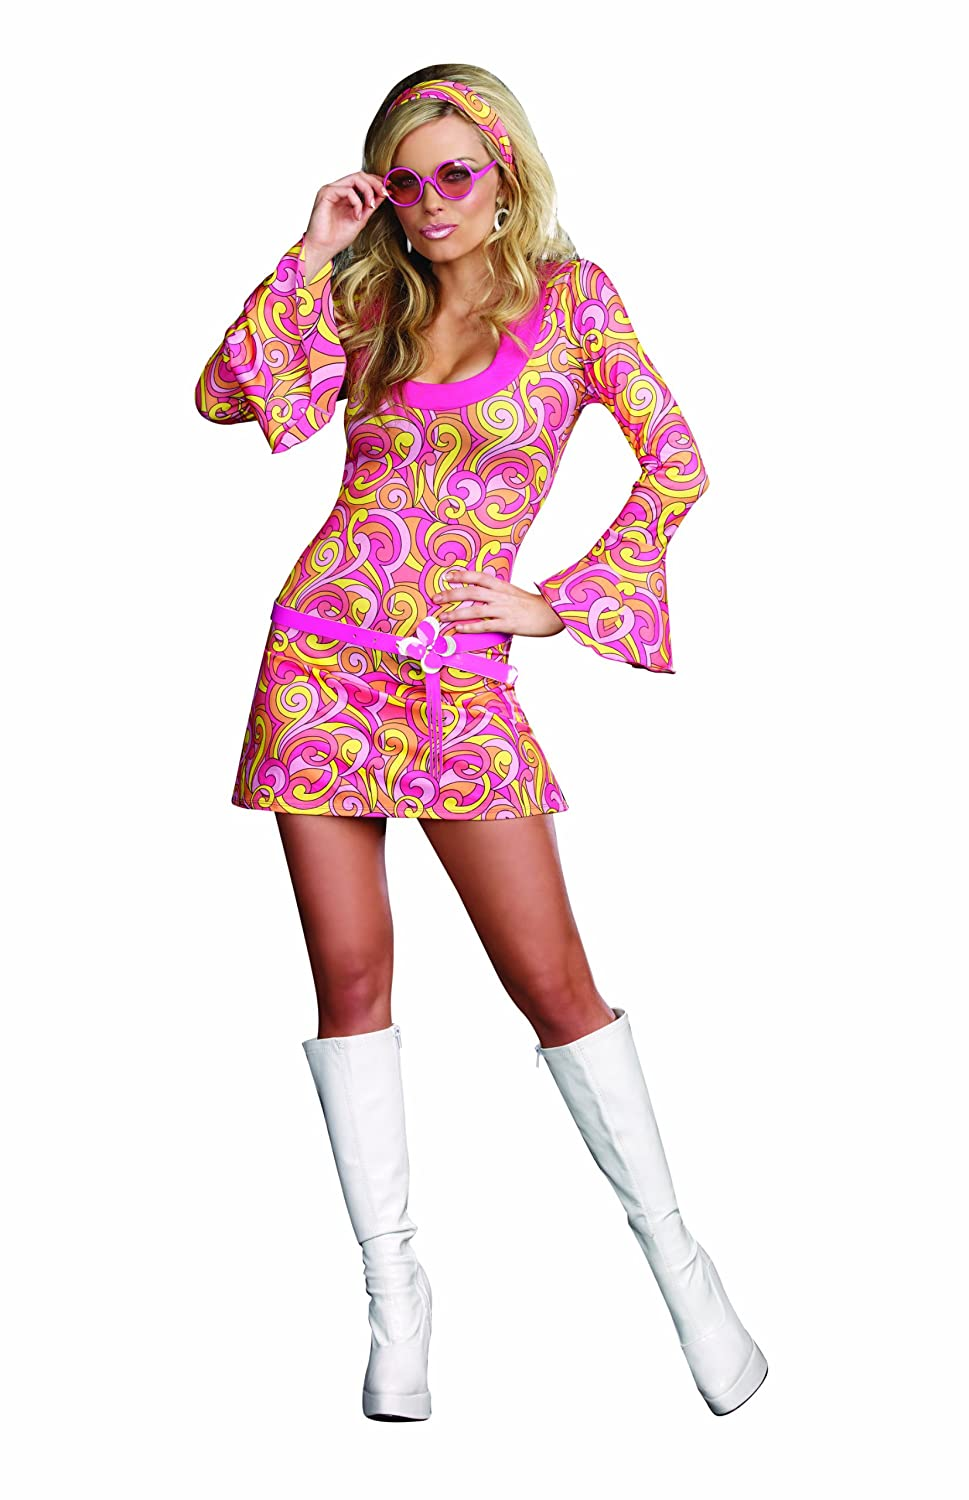 60s Dresses | 1960s Dresses Mod, Mini, Hippie Dreamgirl Womens Go Go Gorgeous Costume $26.99 AT vintagedancer.com